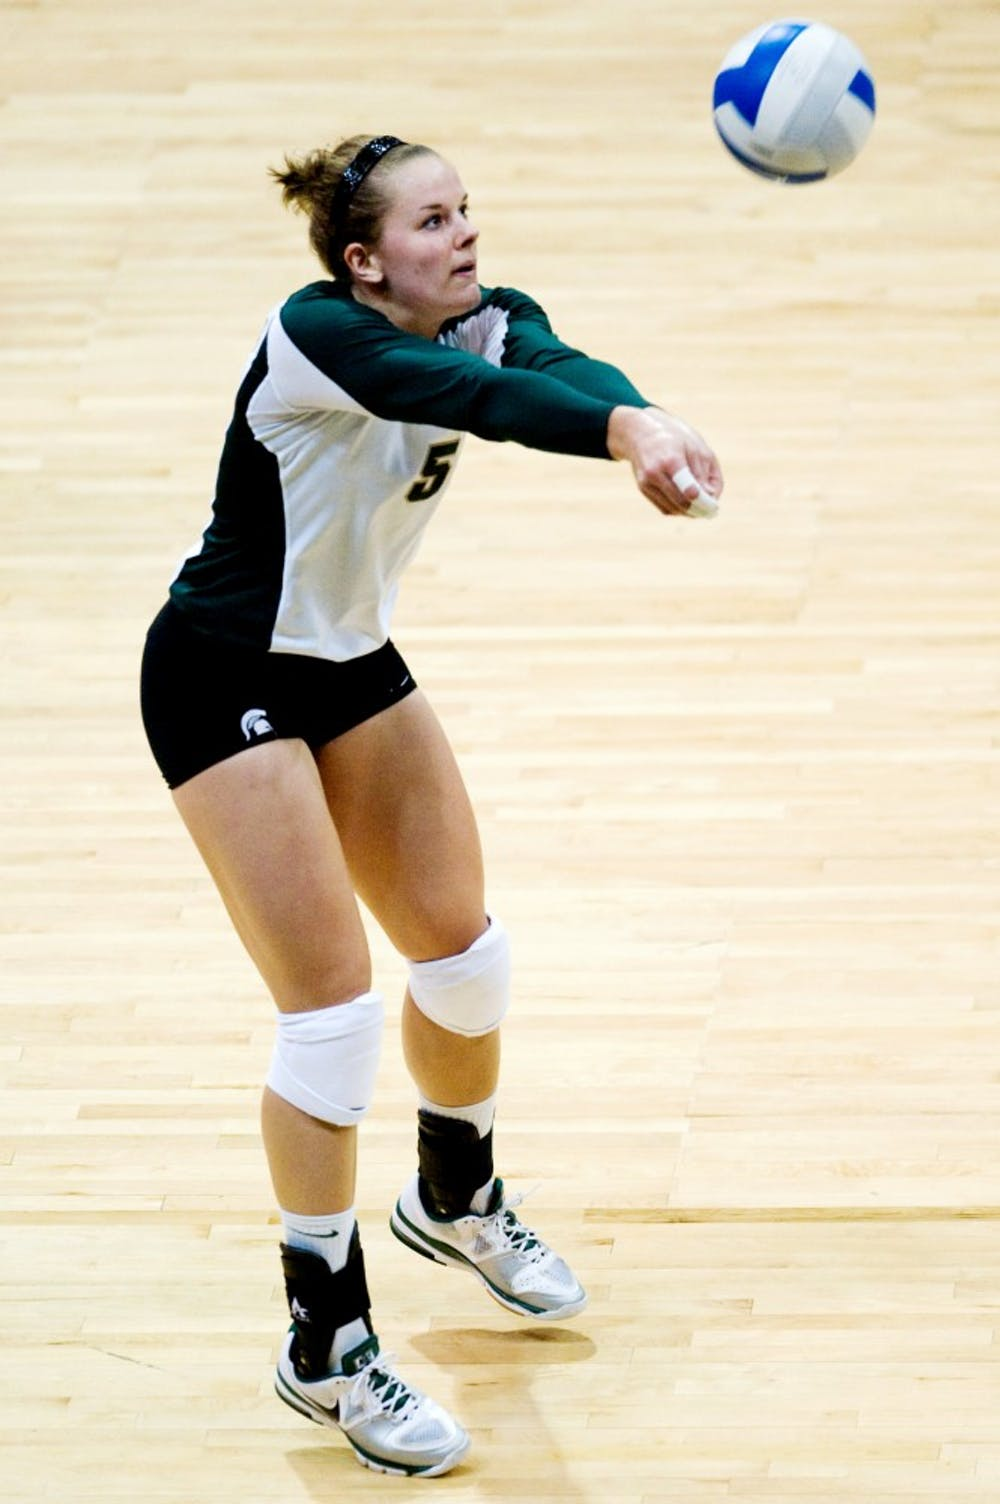 Senior outside hitter Jenilee Rathje bumps the ball during Saturday's game against Minnesota at Jenison Field House. Lauren Wood/The State News